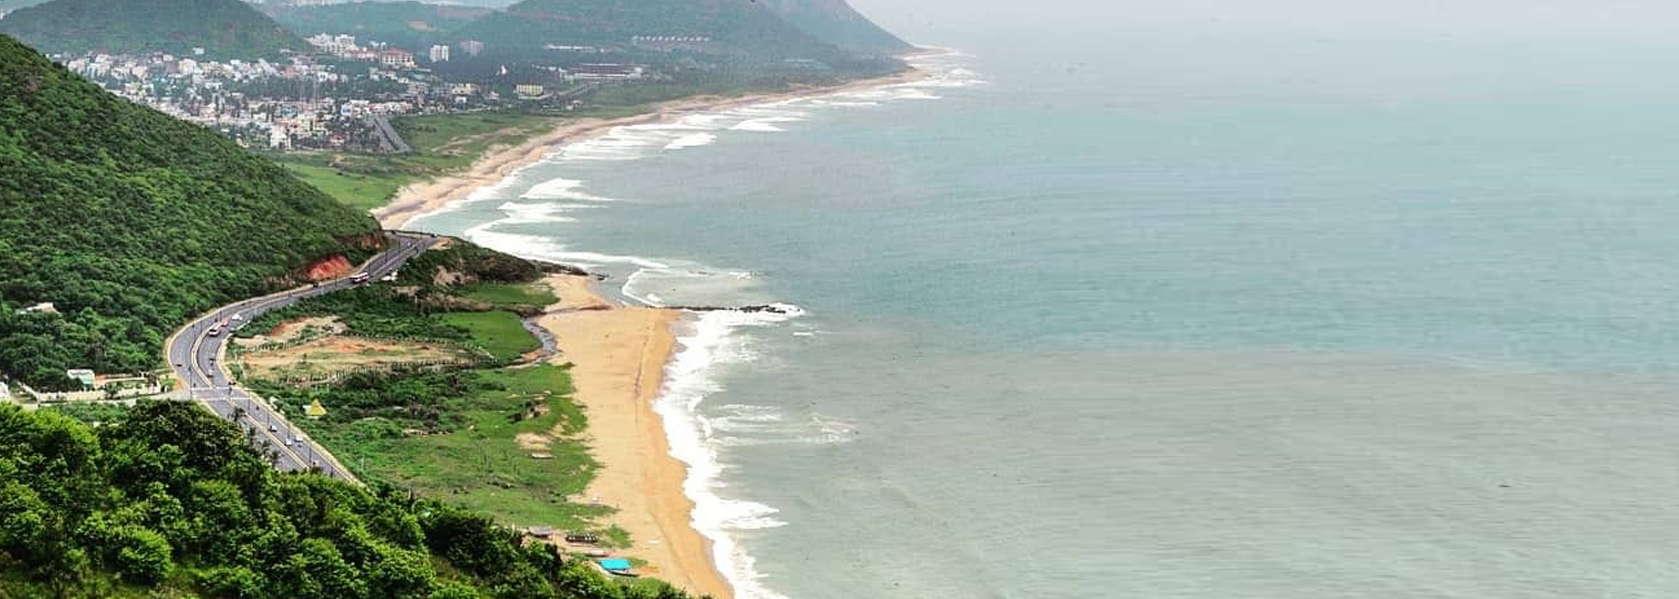 Top Attractions in Visakhapatnam (Vizag)